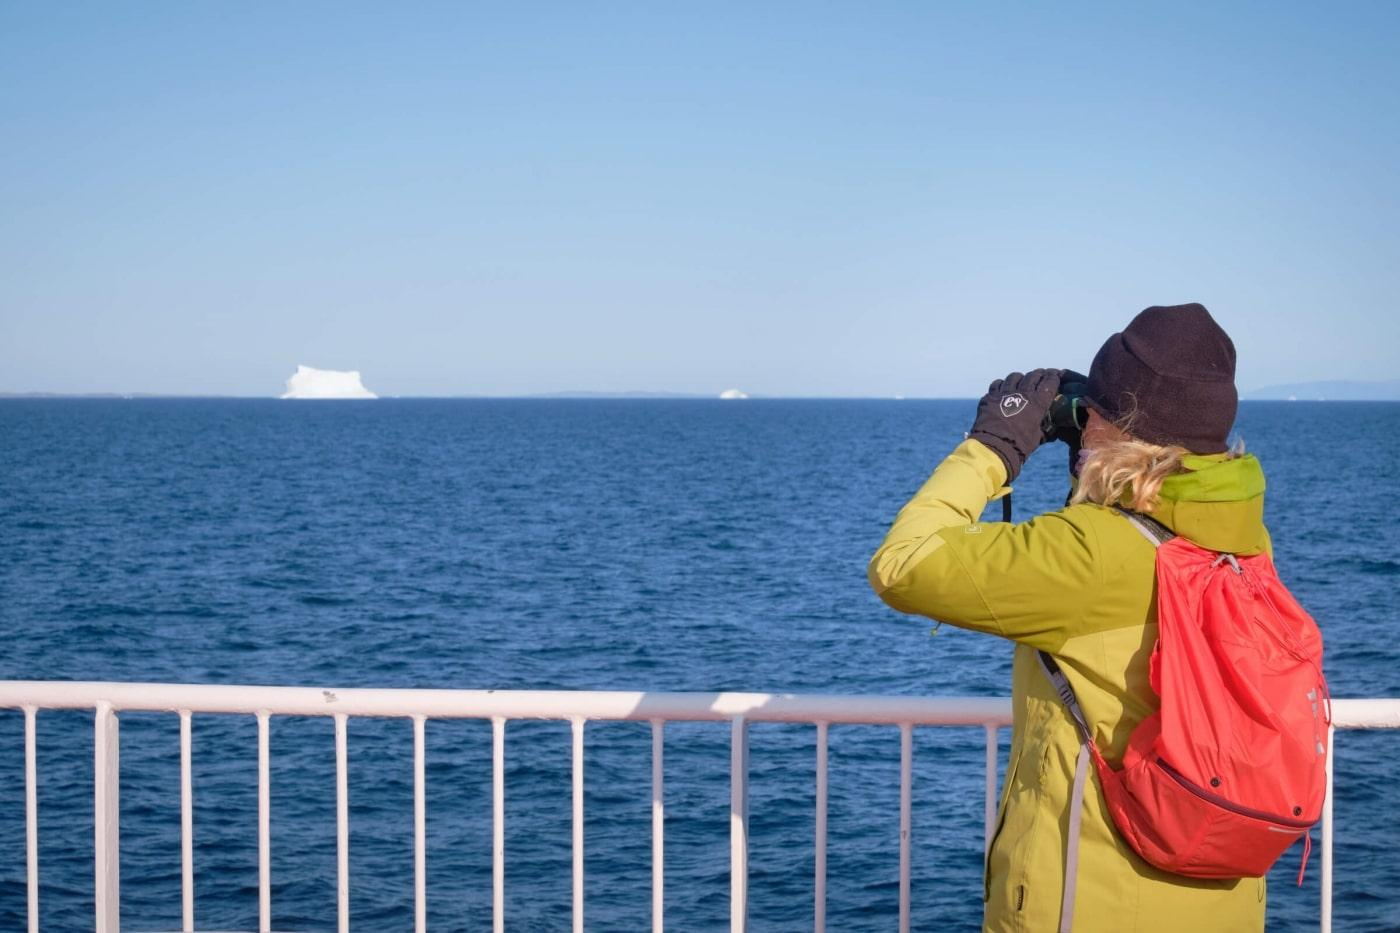 Passenger looking for whales through binoculars as Sarfaq Ittuk sails through Disko Bay - iceberg in the distance. Photo by Lisa Germany